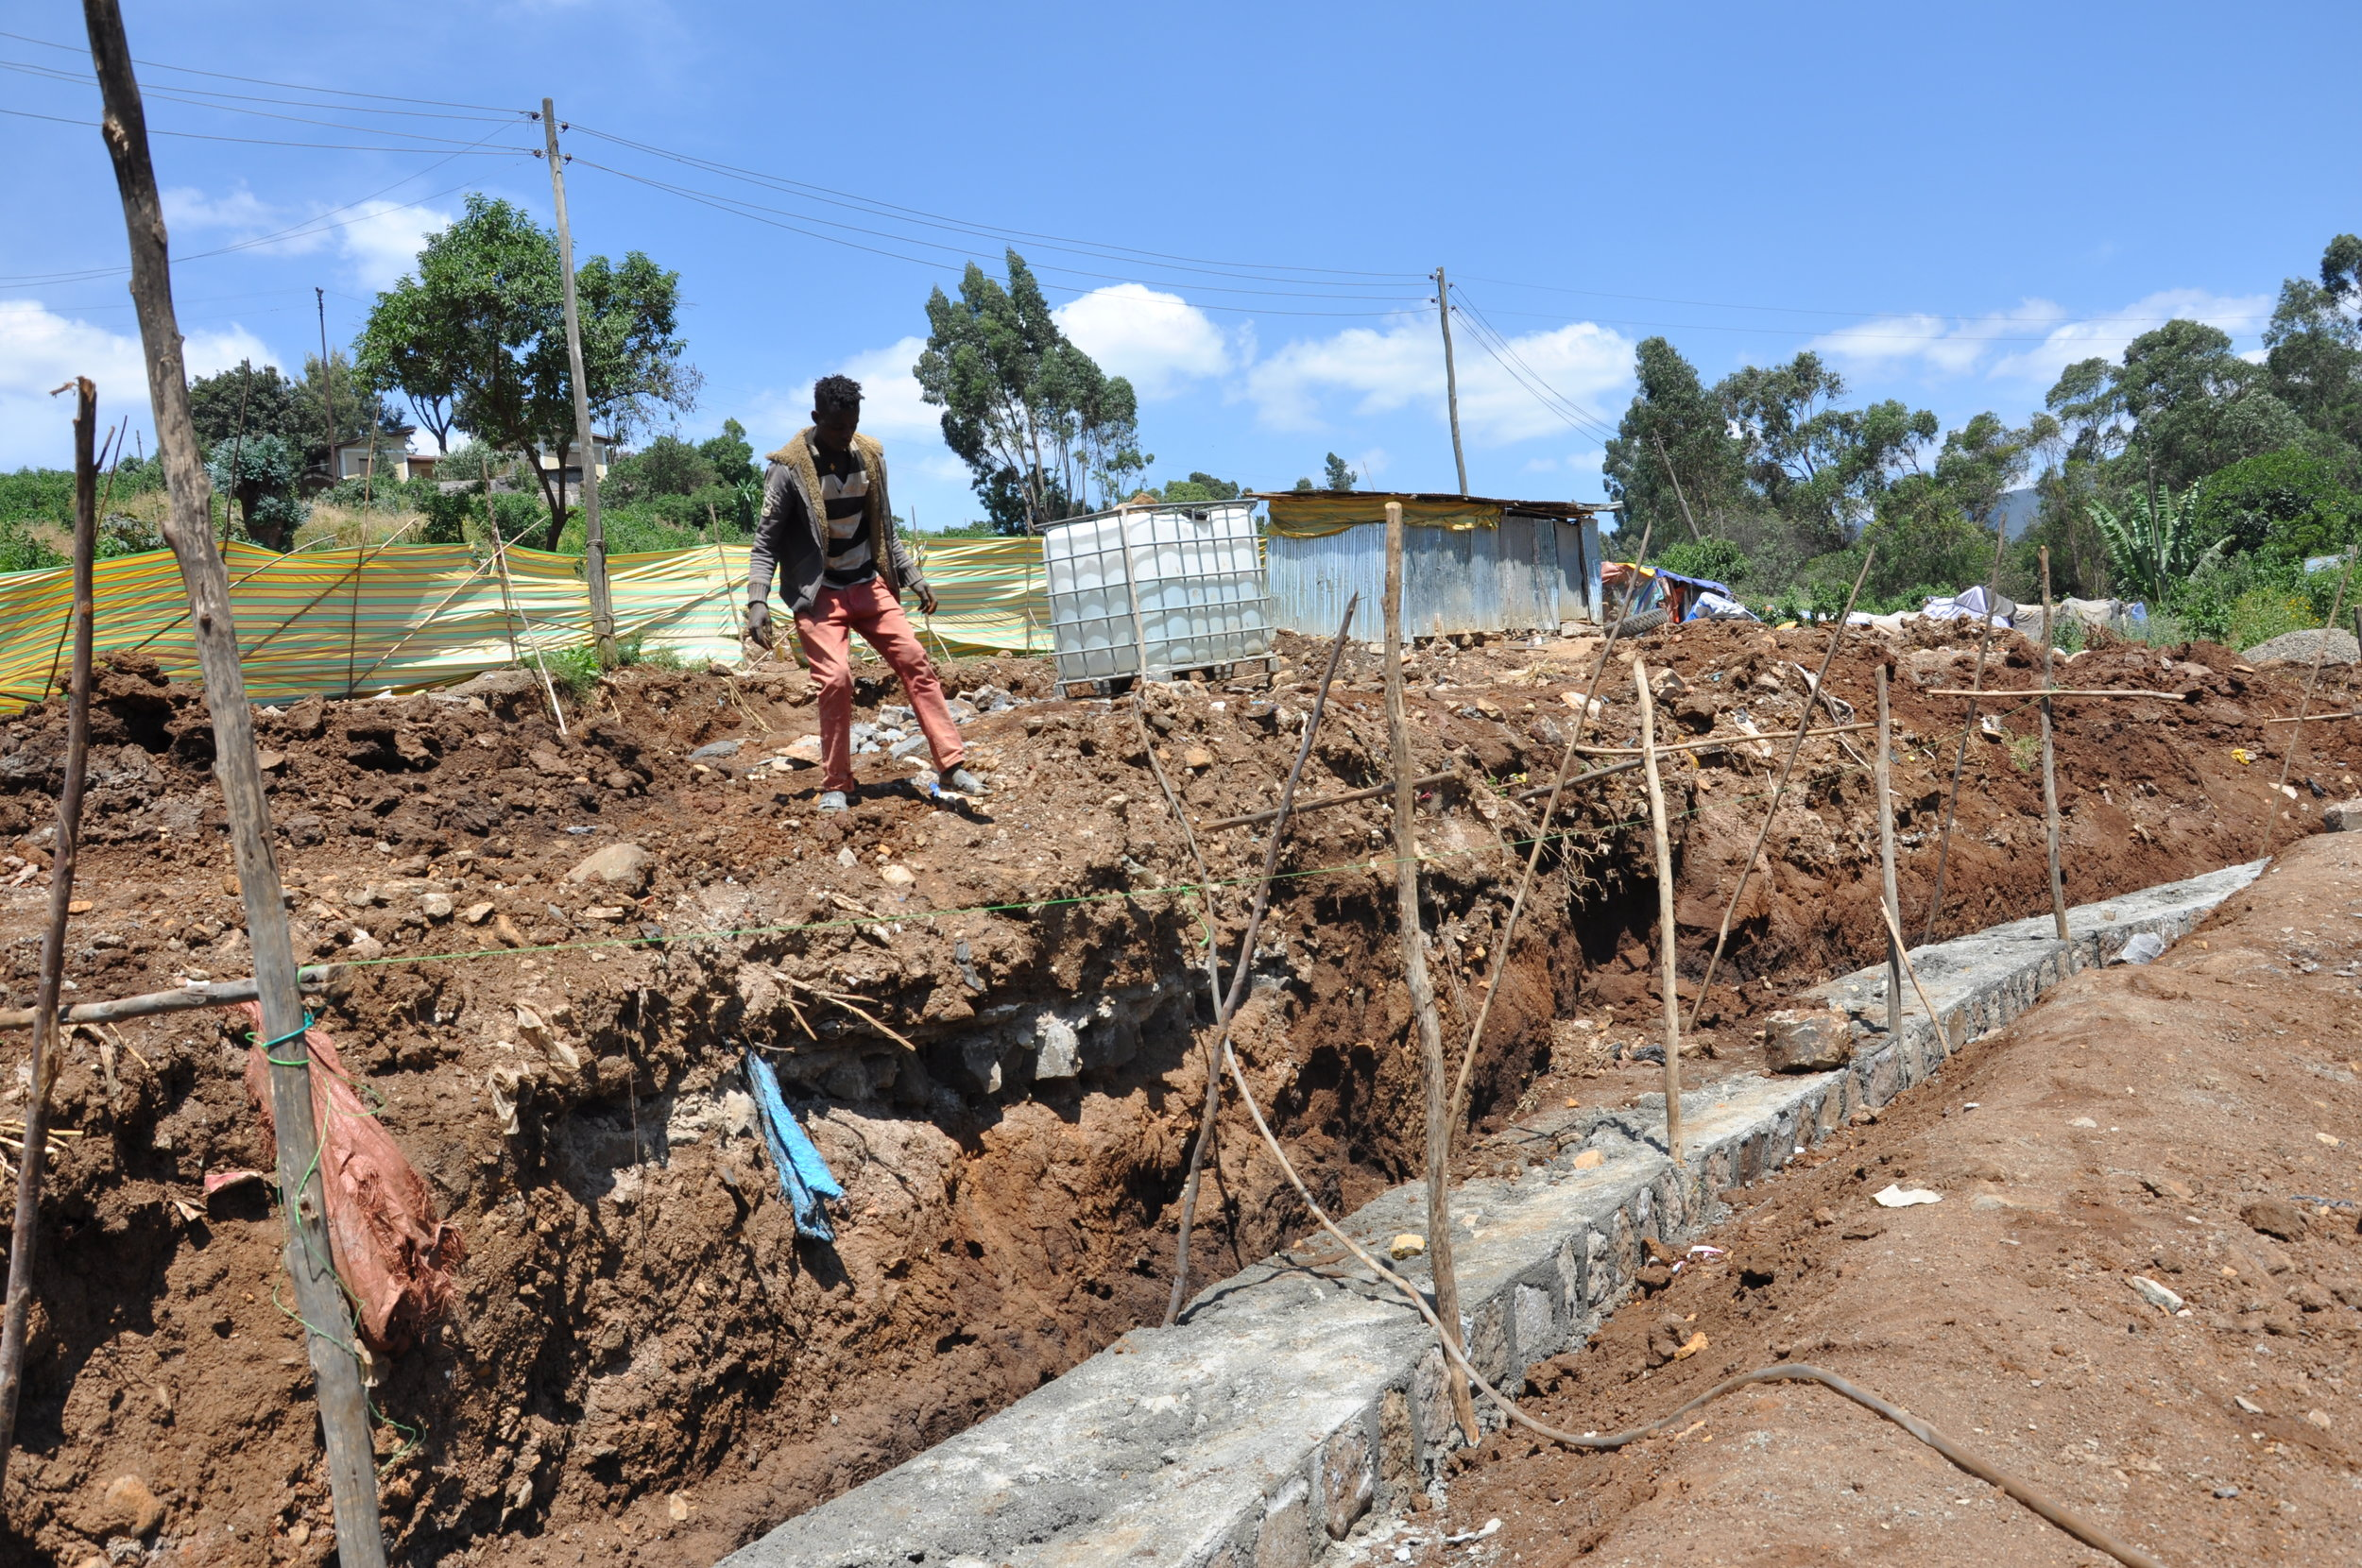 Construction of the site began with building strong walls to border the park. Credit: UN-Habitat